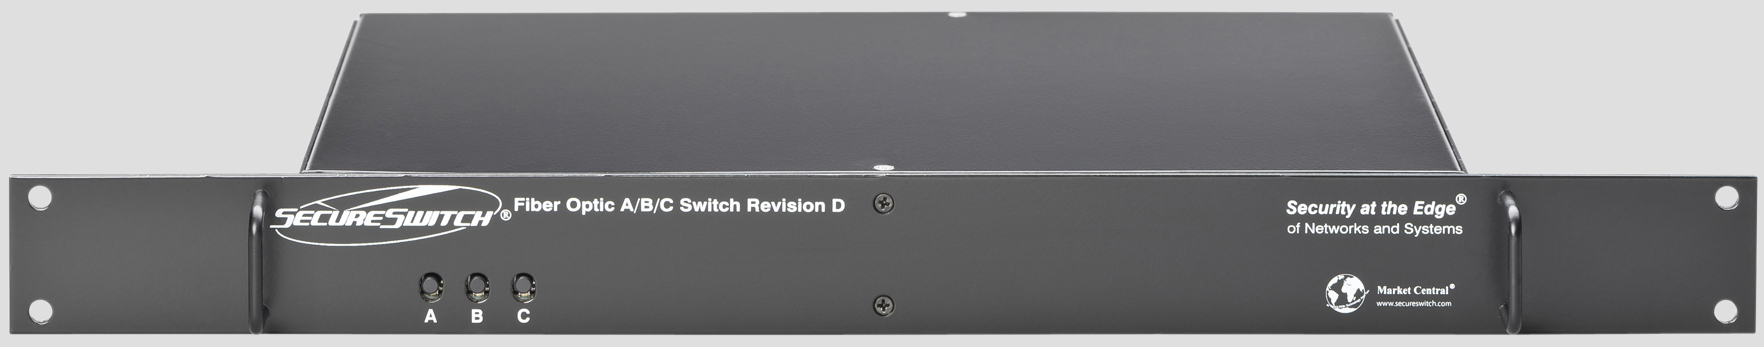 rackmount revB switch